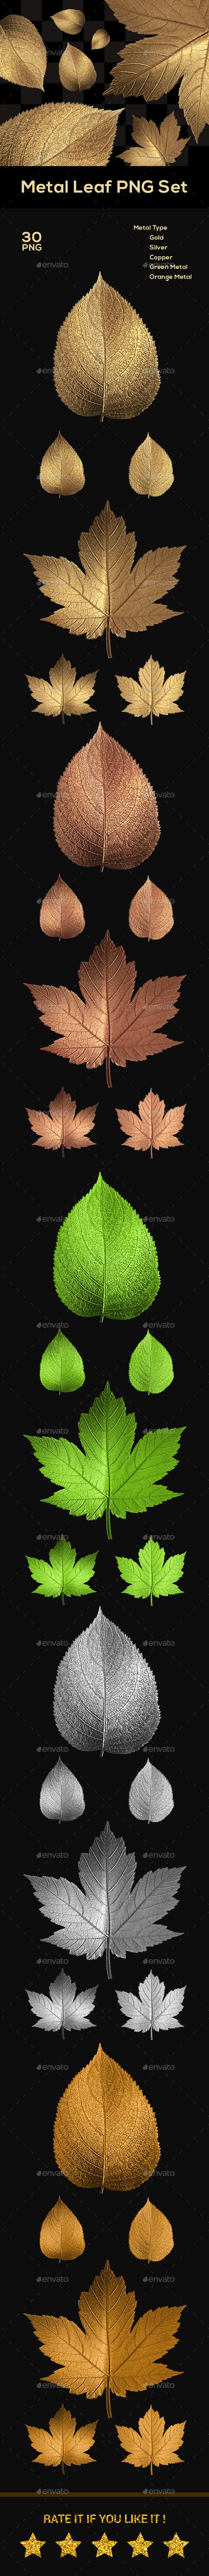 GraphicRiver Metal Leaf PNG Set 20715338